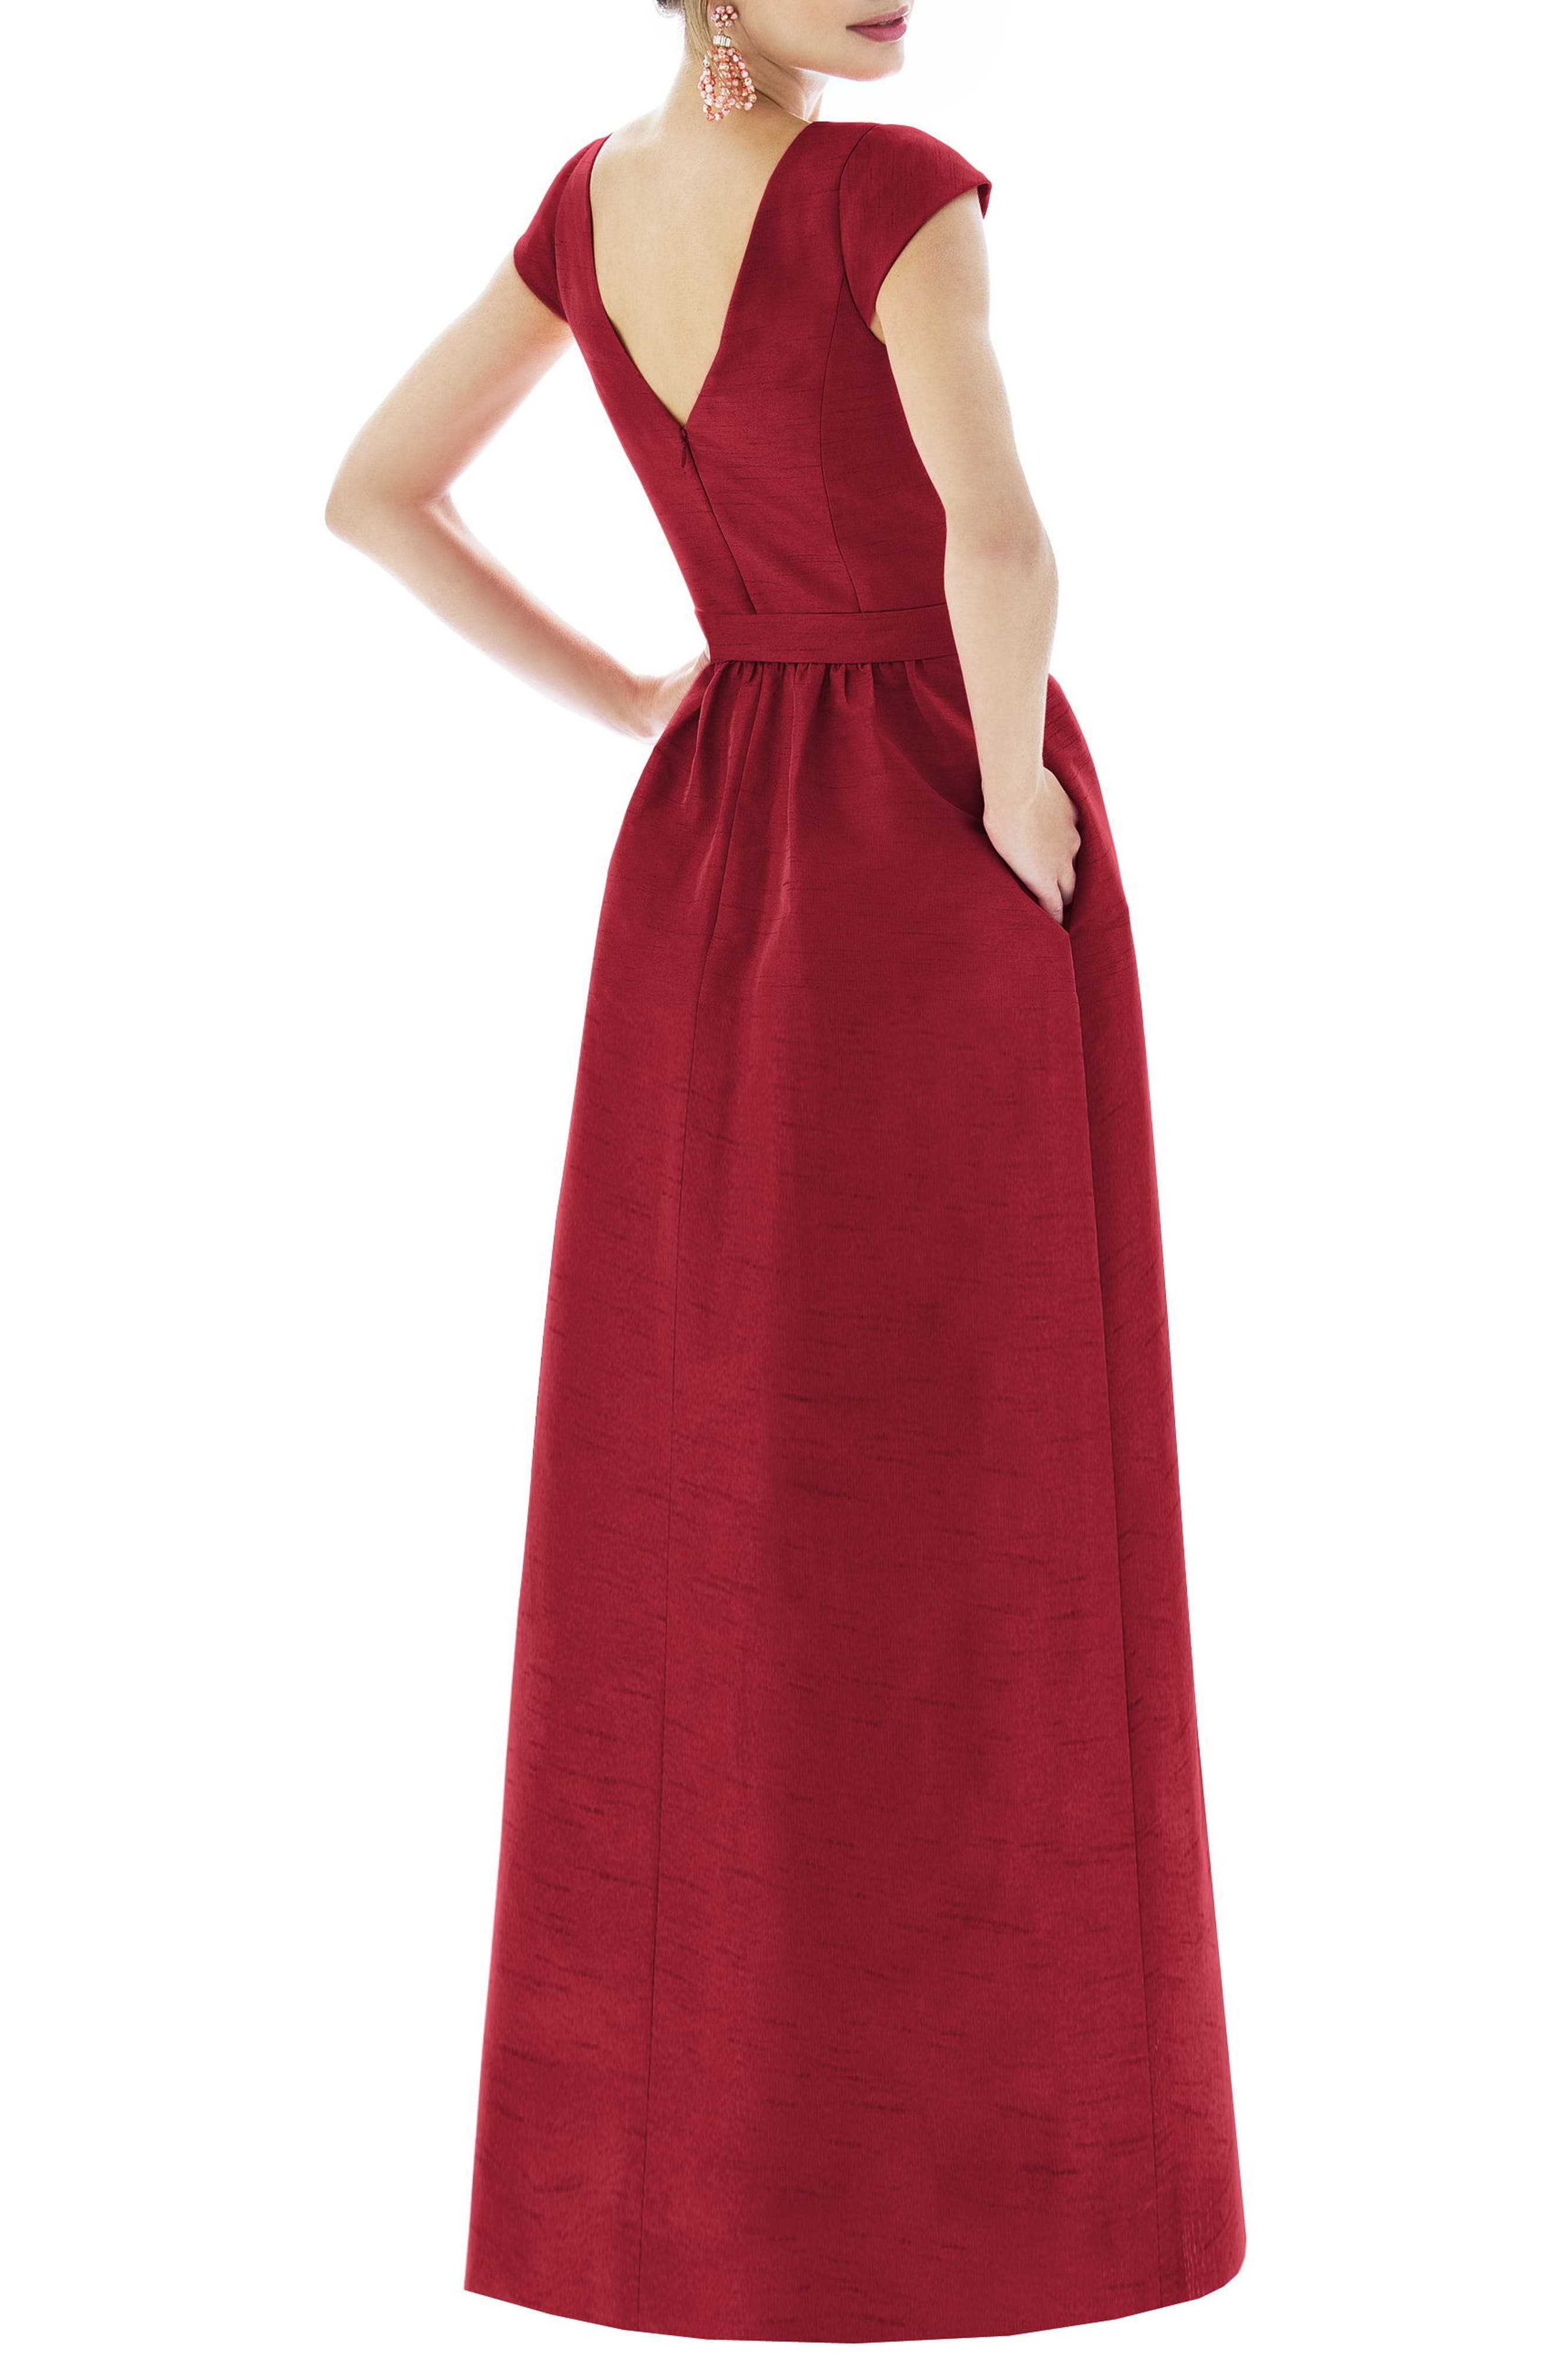 ALFRED SUNG, Cap Sleeve Dupioni Full Length Dress, Alternate thumbnail 2, color, BARCELONA